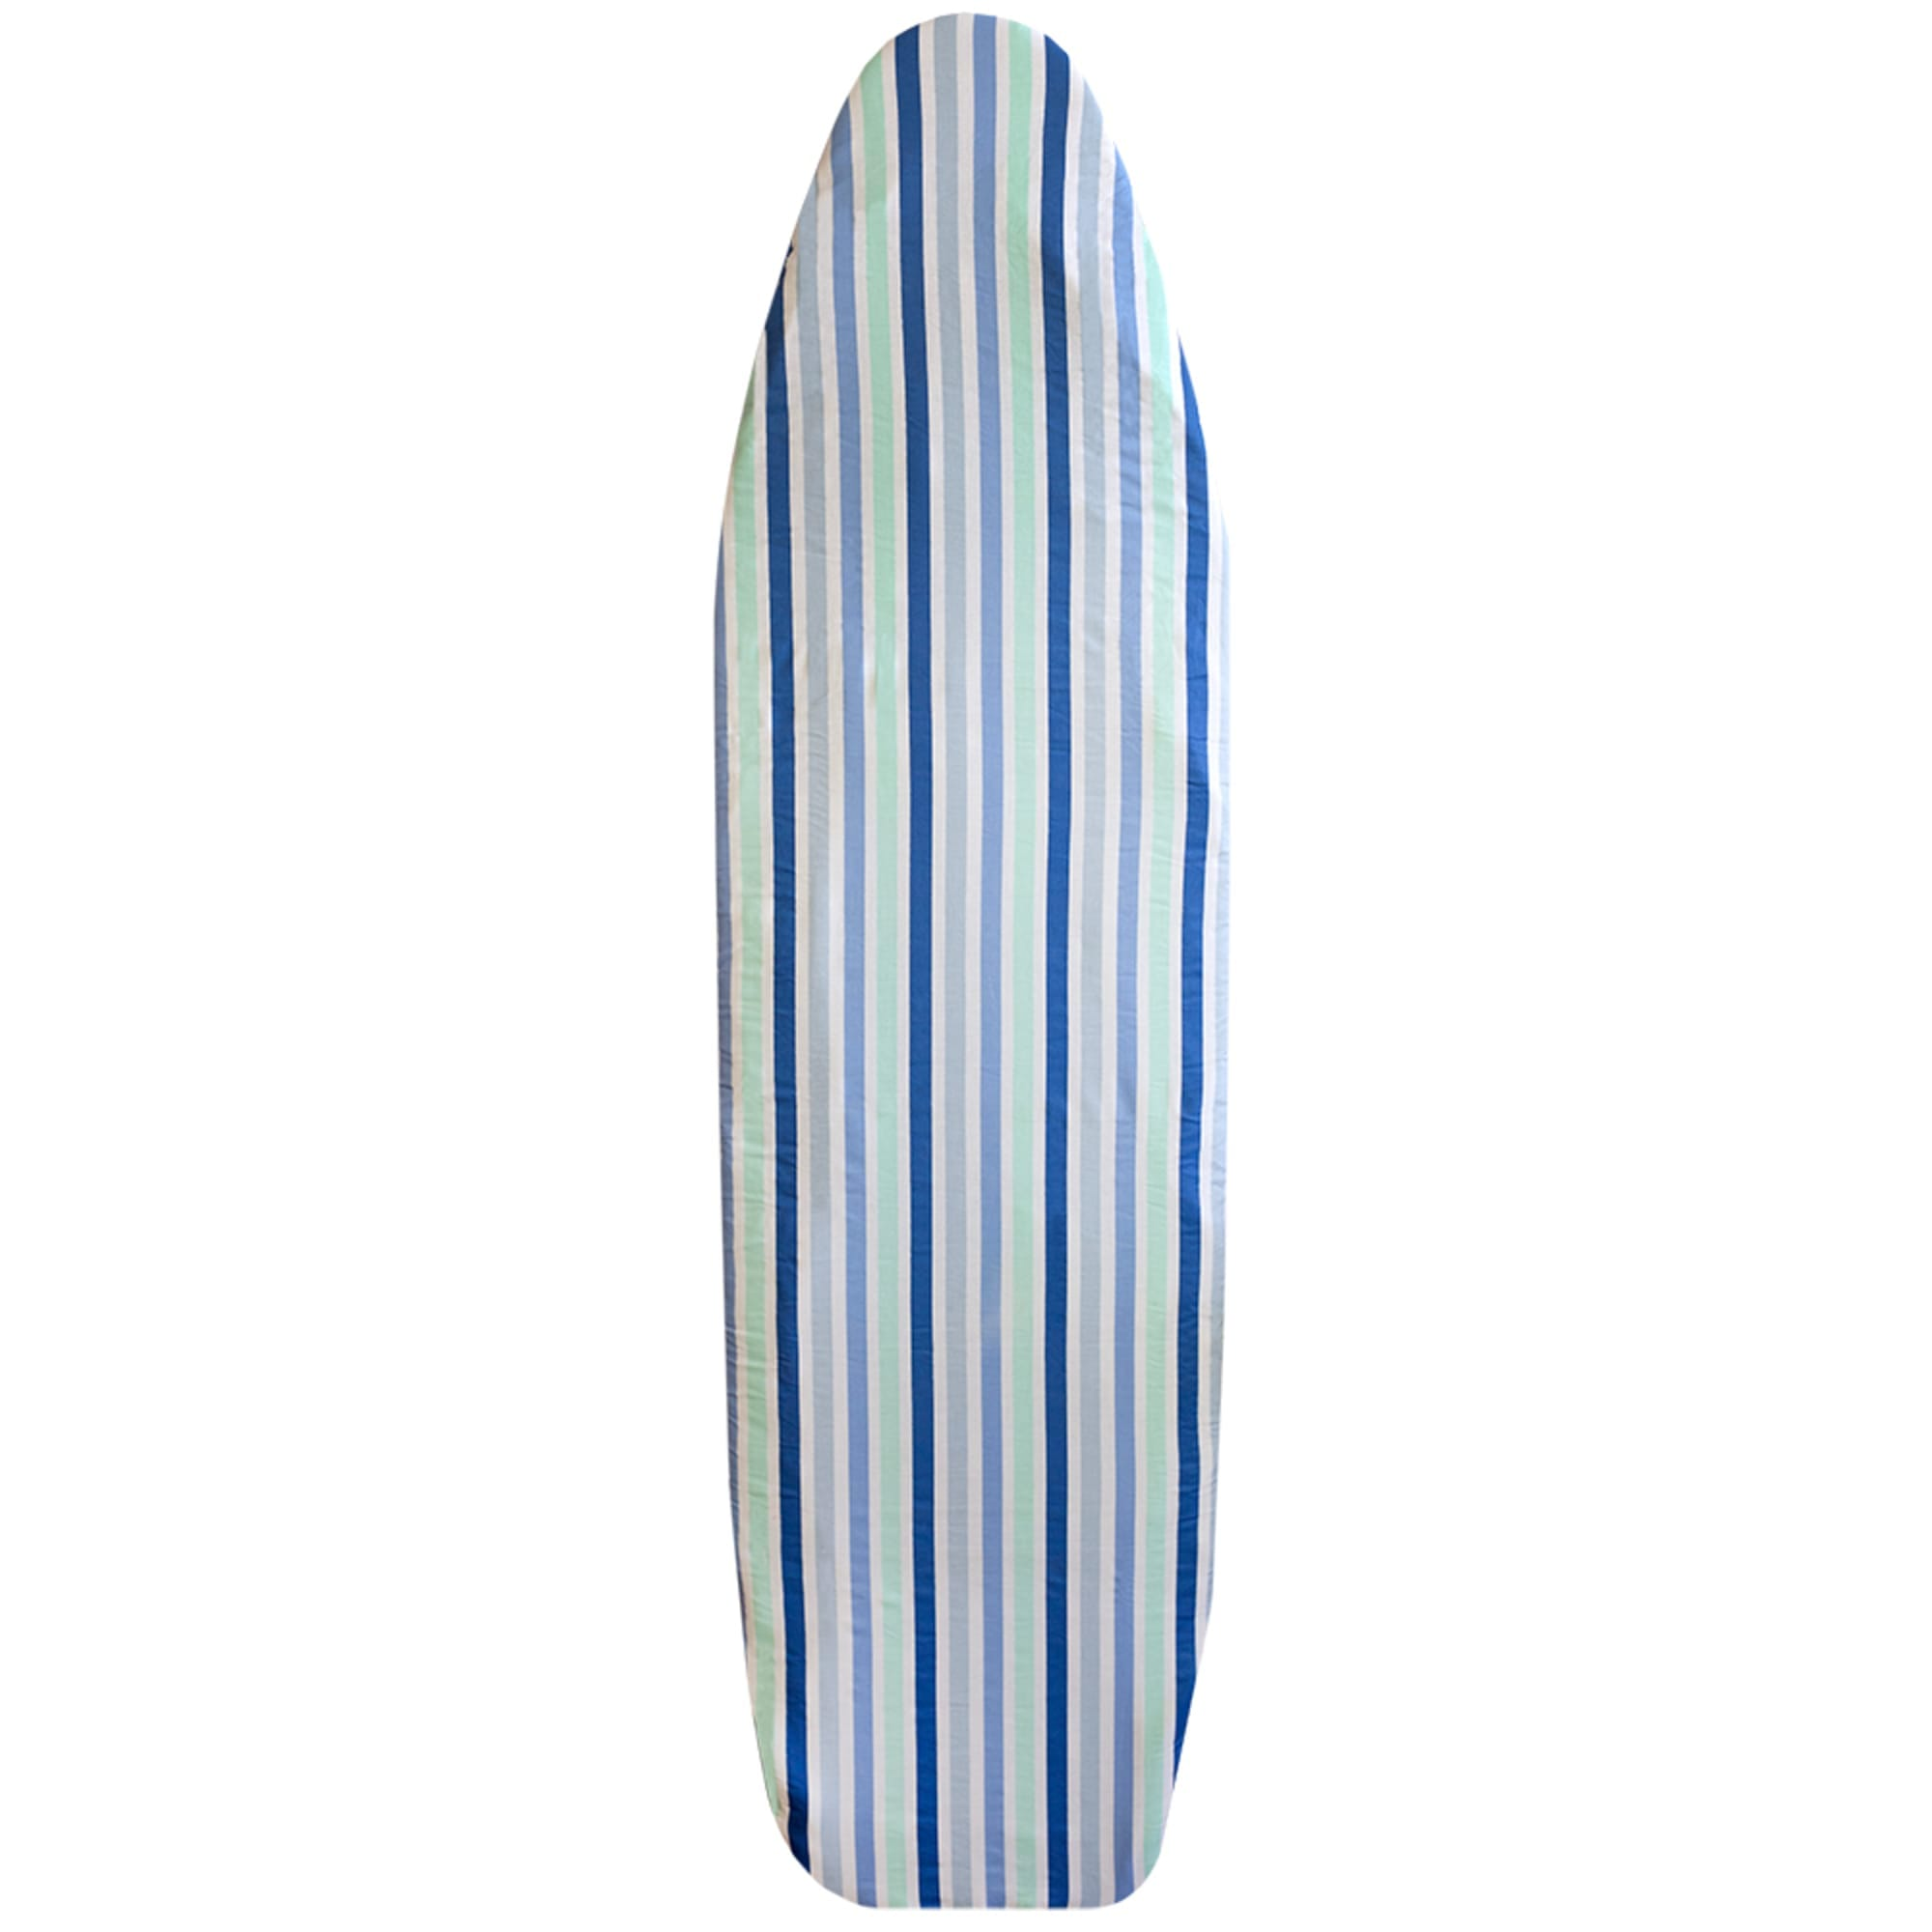 Sunbeam Stripes Cotton Ironing Board Cover, Multi-Color